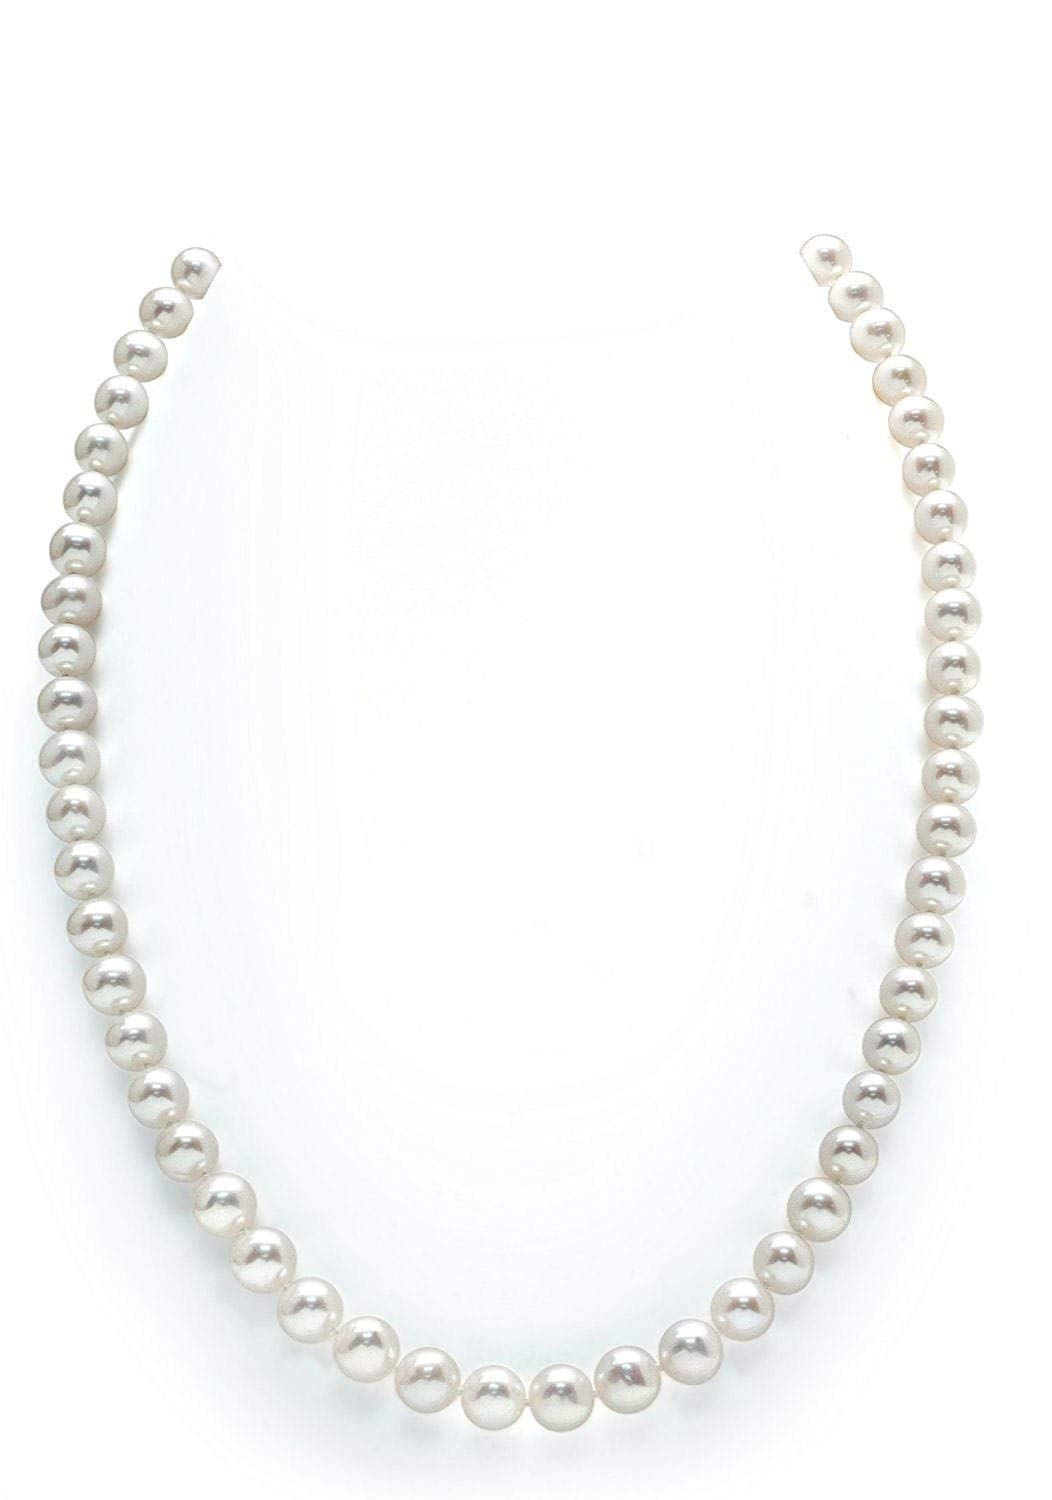 """THE PEARL SOURCE 14K Gold 6.0-6.5mm AAAA Quality White Freshwater Cultured Pearl Necklace for Women in 36"""" Opera Length"""